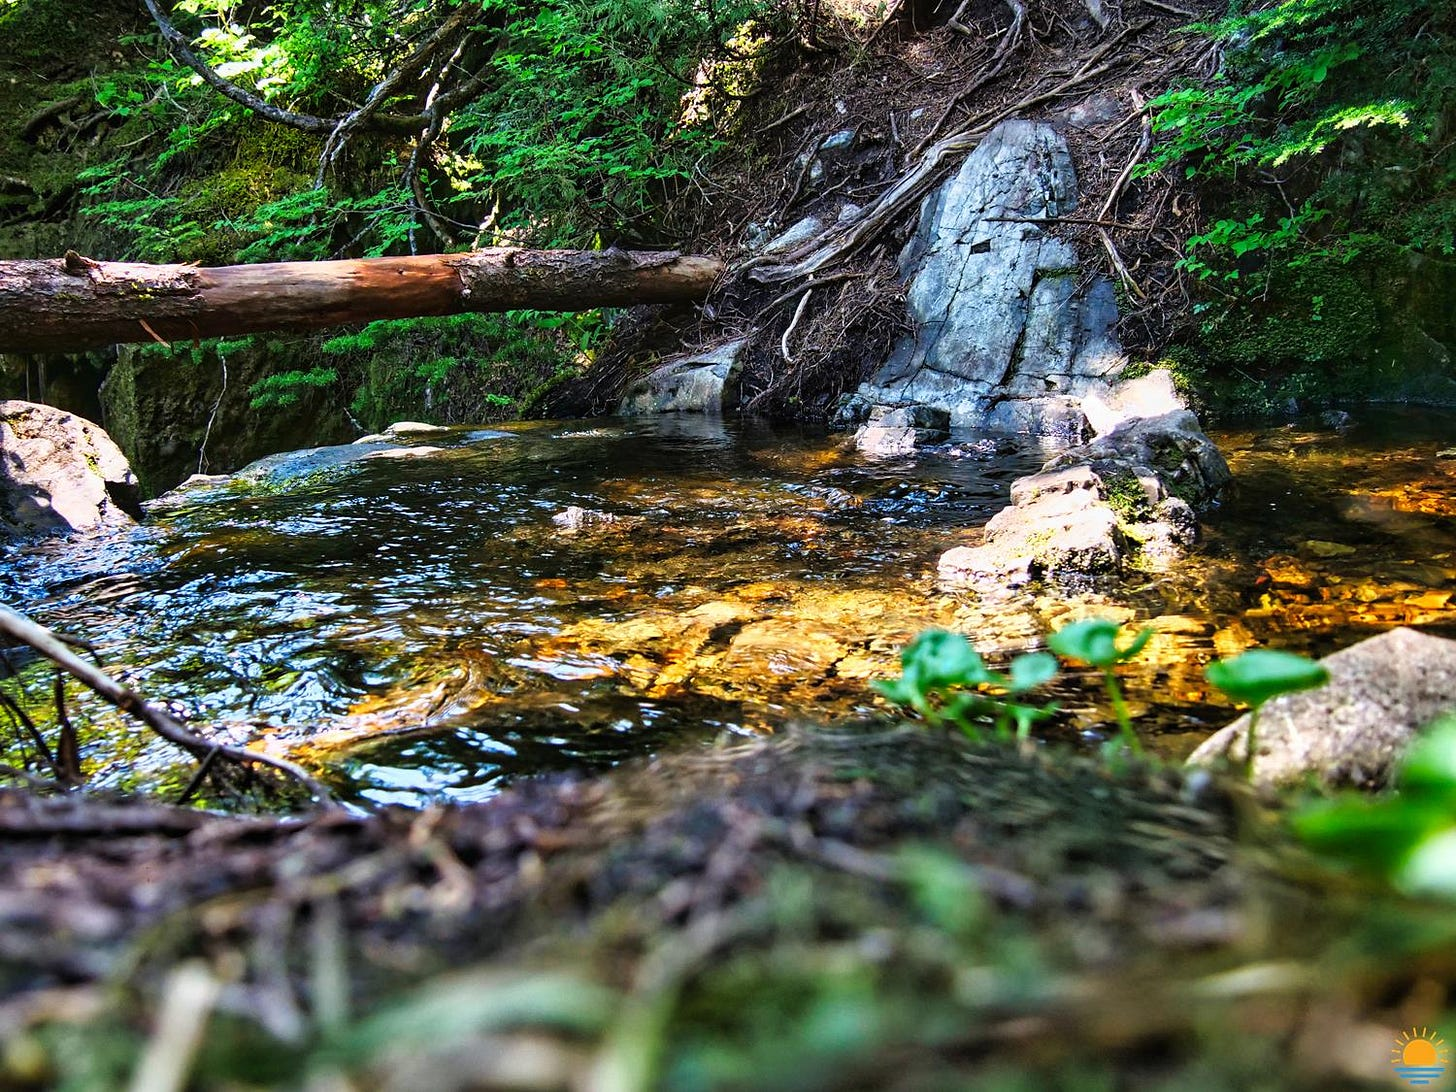 Cool stream on a summer day.